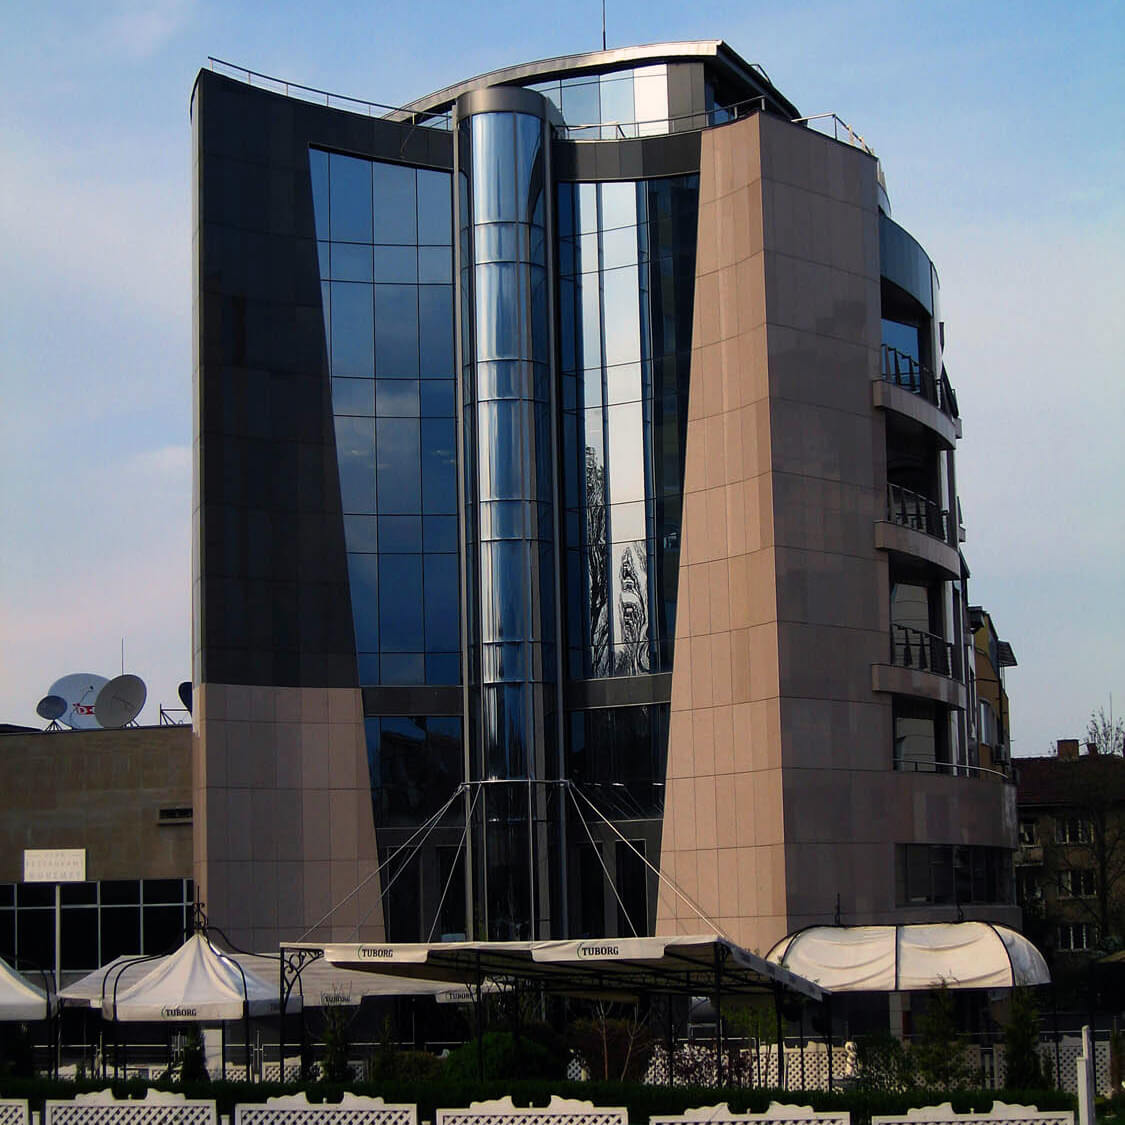 Front view of City Business center in Sofia, Bulgaria